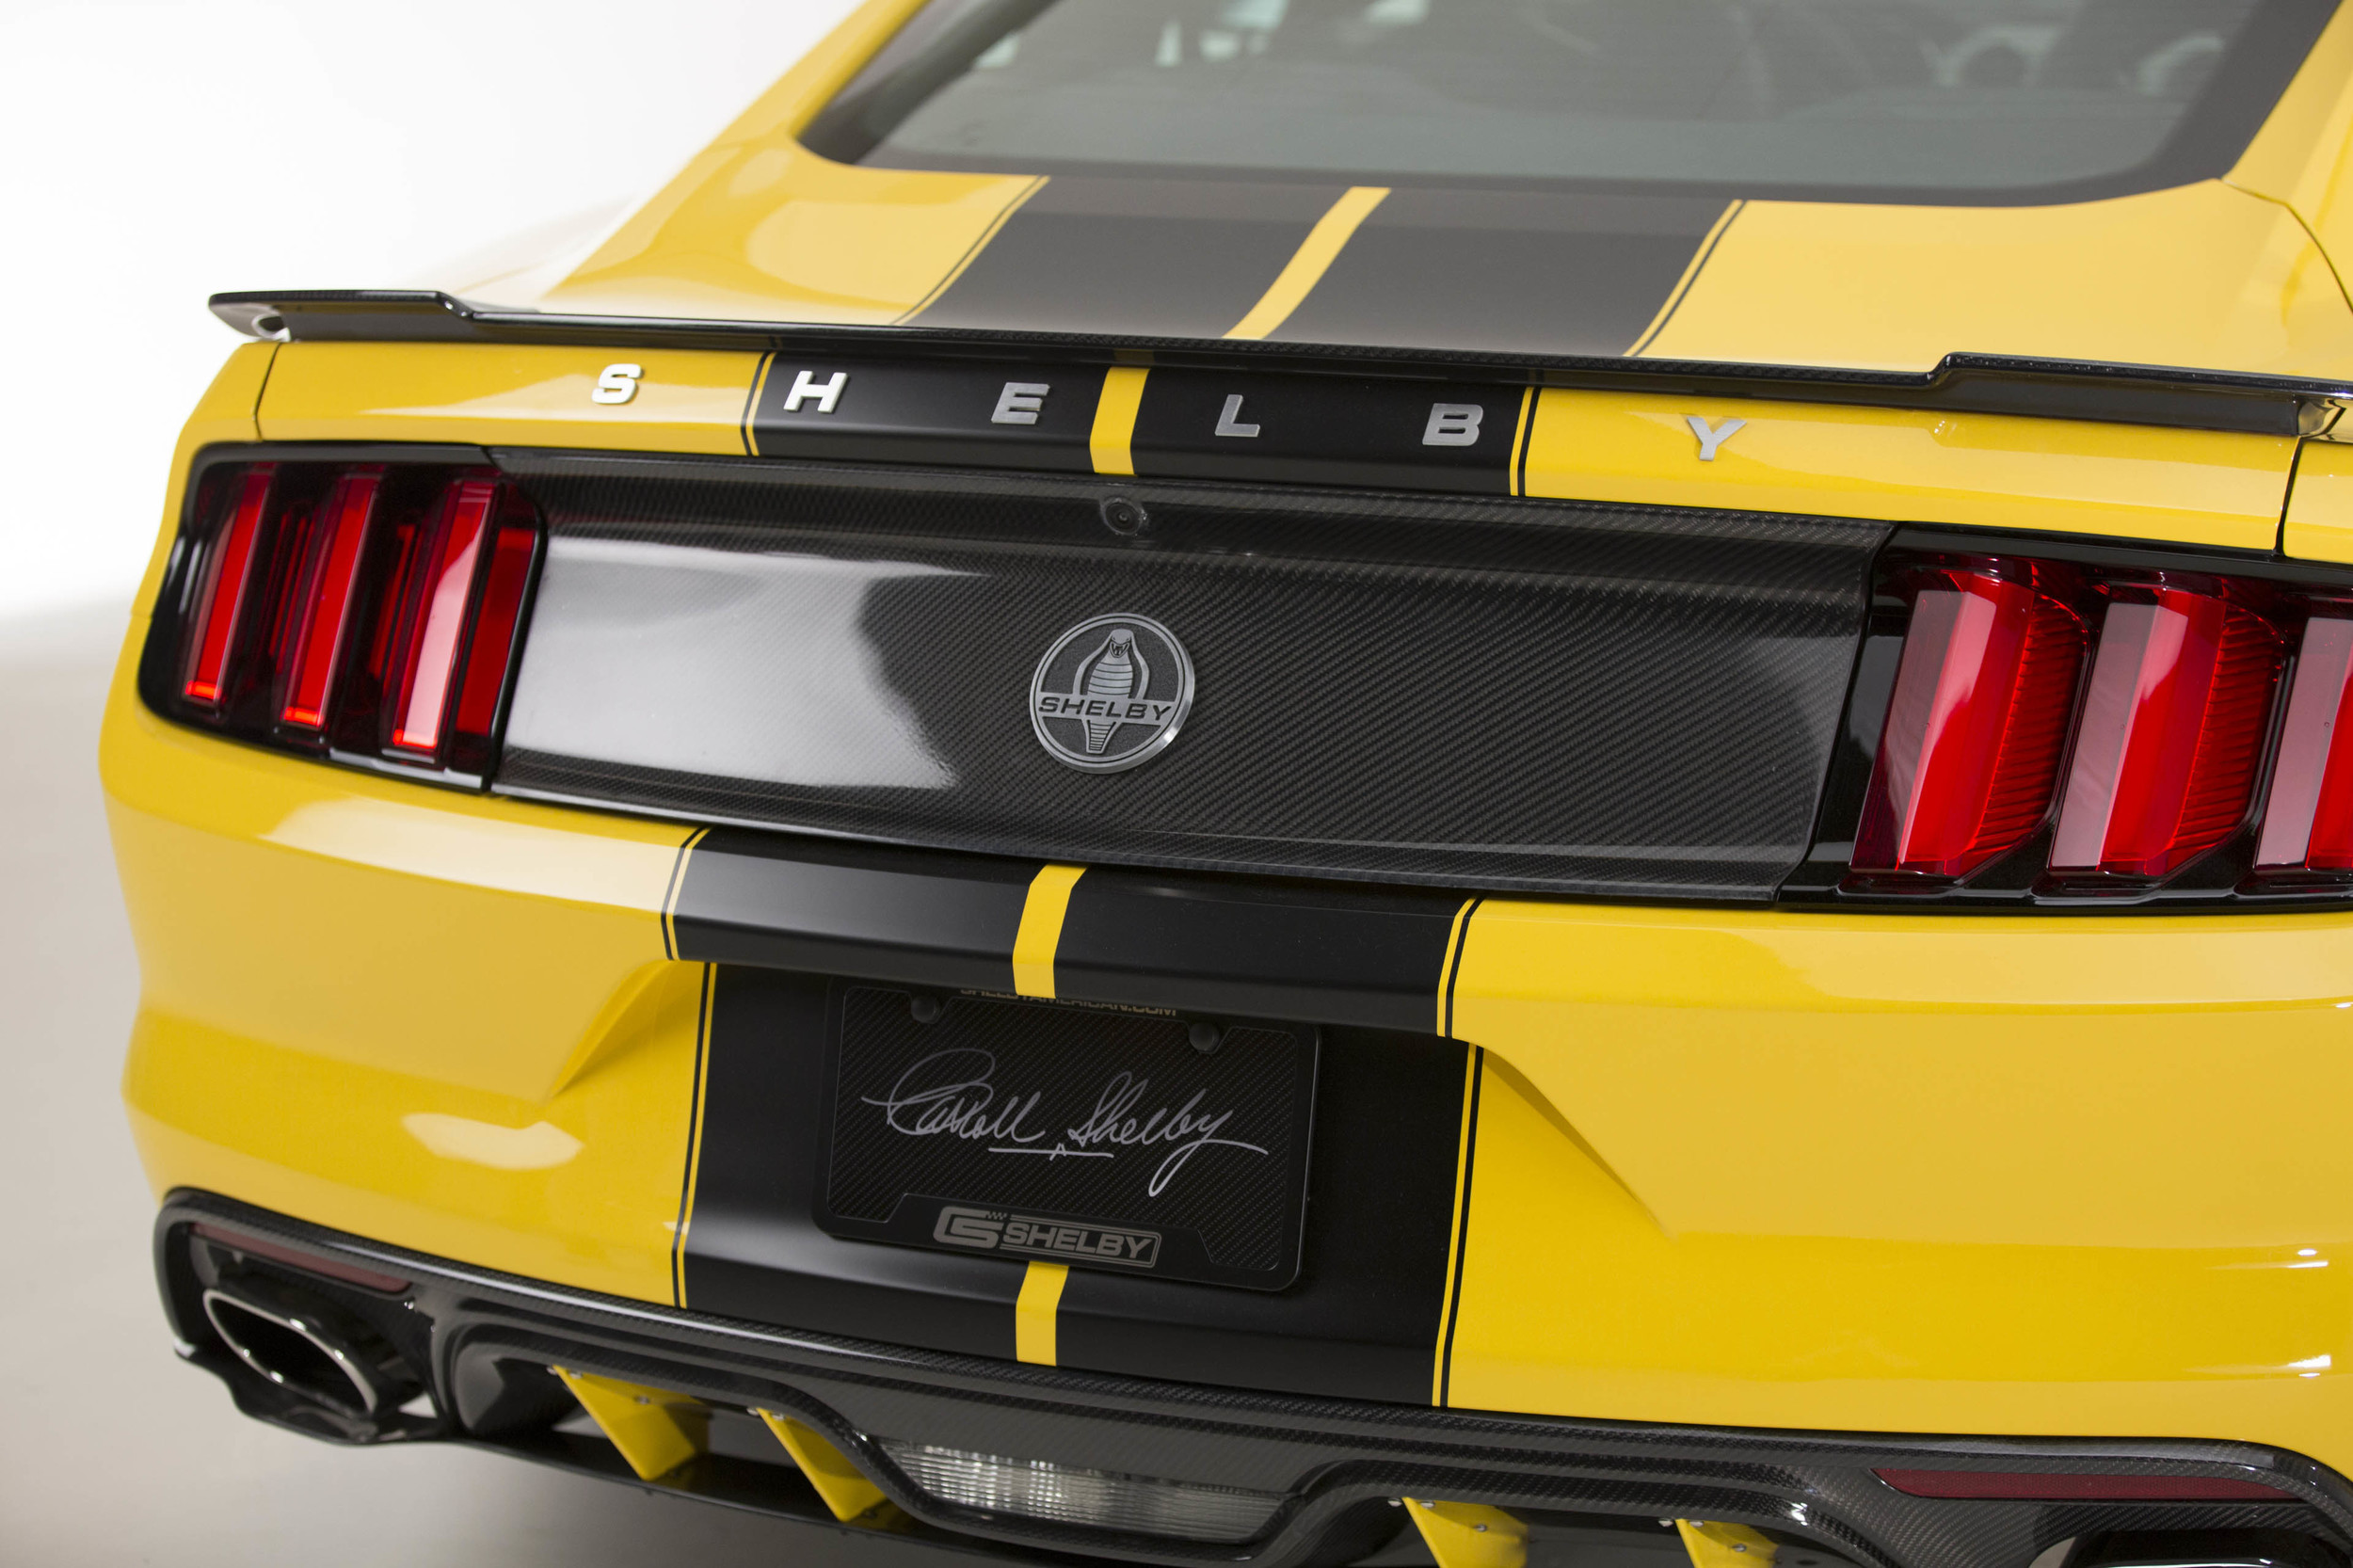 Ford Mustang 2015 Gt Ford Mustang Shelby GT 2015 (29/41)